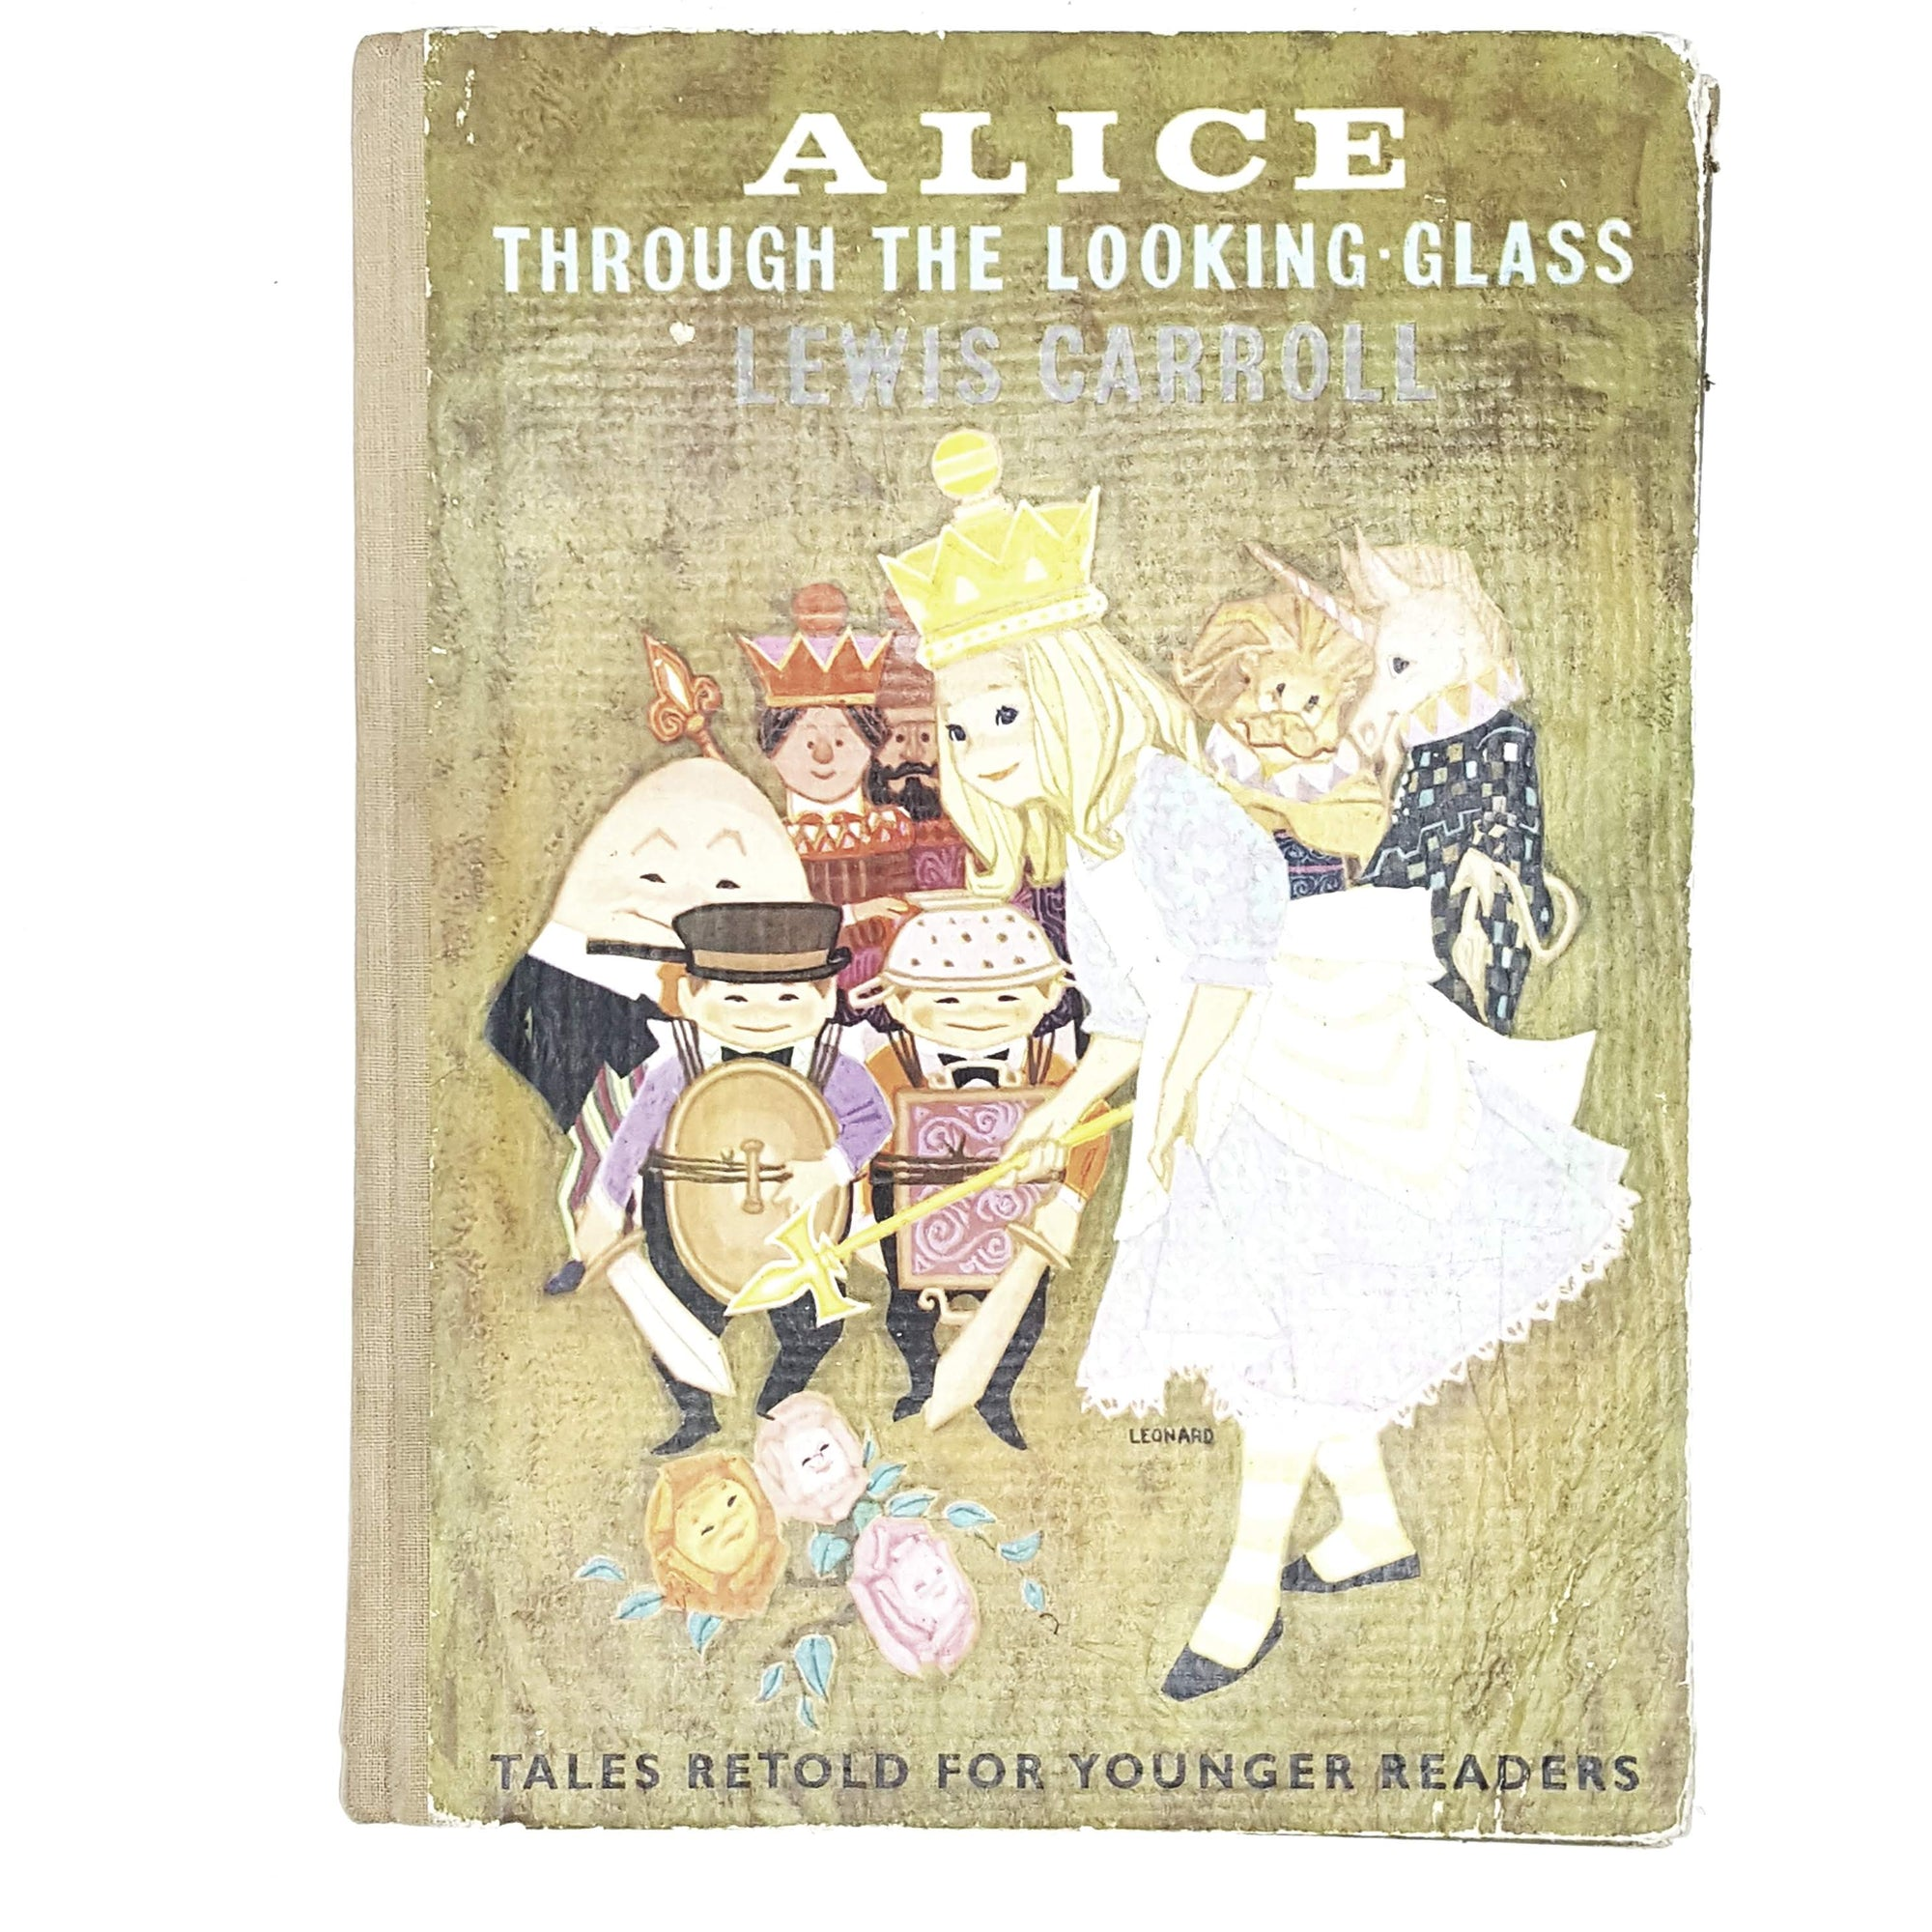 Lewis Carroll's Alice Through the Looking Glass Golden Pleasure Books ltd